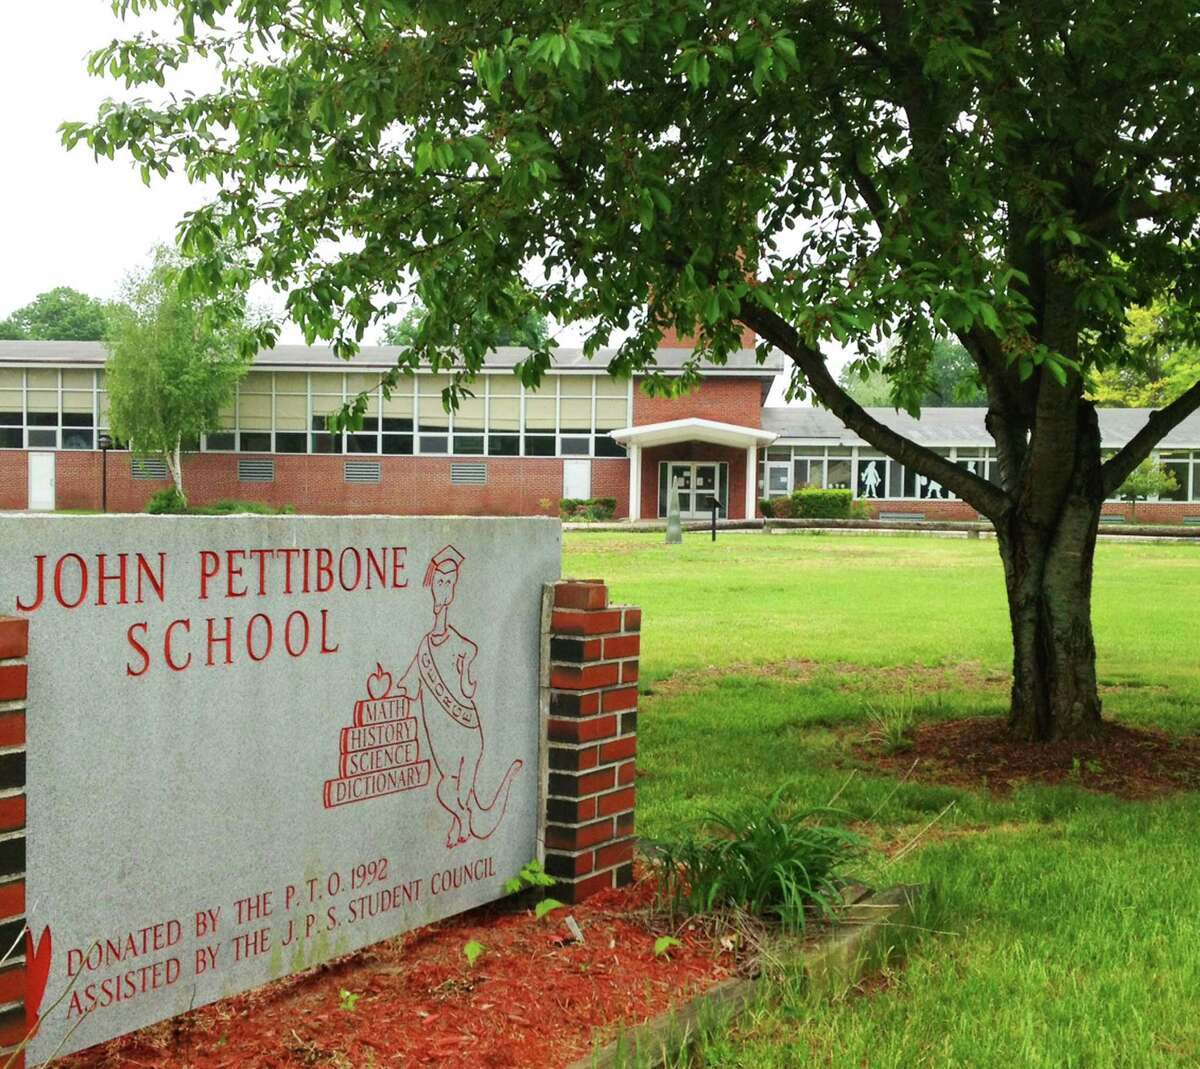 John Pettibone School closed at the end of June but remains in Board of Education management until Sept. 30 when it will be turned over to the town.